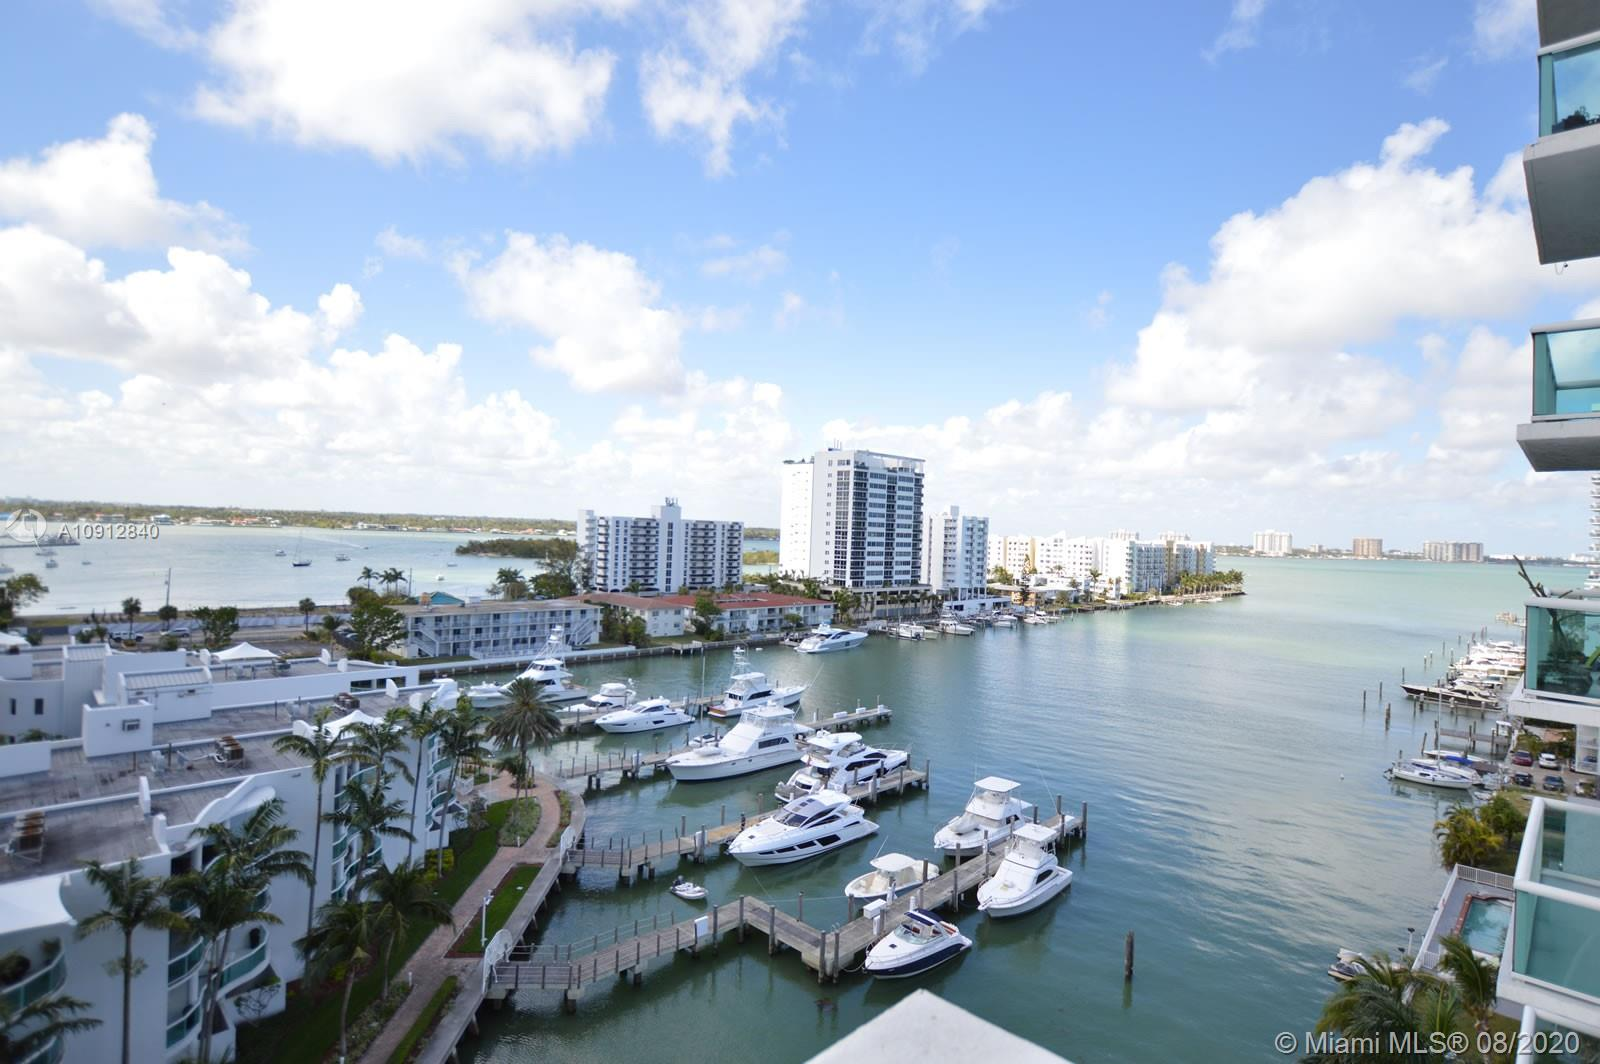 Live right in the middle of Biscayne Bay, not just facing it, at 360 Condo of North Bay Village on Harbor Island. This 2BD/2BA condo, w/a 1,251 SF split open floorplan, provides big views of the bay & its private marina through a wide bank of floor-to-ceiling windows and a long stretch of balcony space. The modern kitchen features stainless appliances, a dining counter, and wood cabinetry. The living areas are fresh and bright with pristine white tile flooring, while the bedrooms benefit from the warm, soothing effect of rich wood floors. Both bedrooms have marble baths and large closets. The amenities and advantages of this boutique condo building are abundant, incl. boat slips, bayside pool, 2 saunas, gym, 24-hr guarded gate, valet garage parking, quick beach & mainland access, and more.